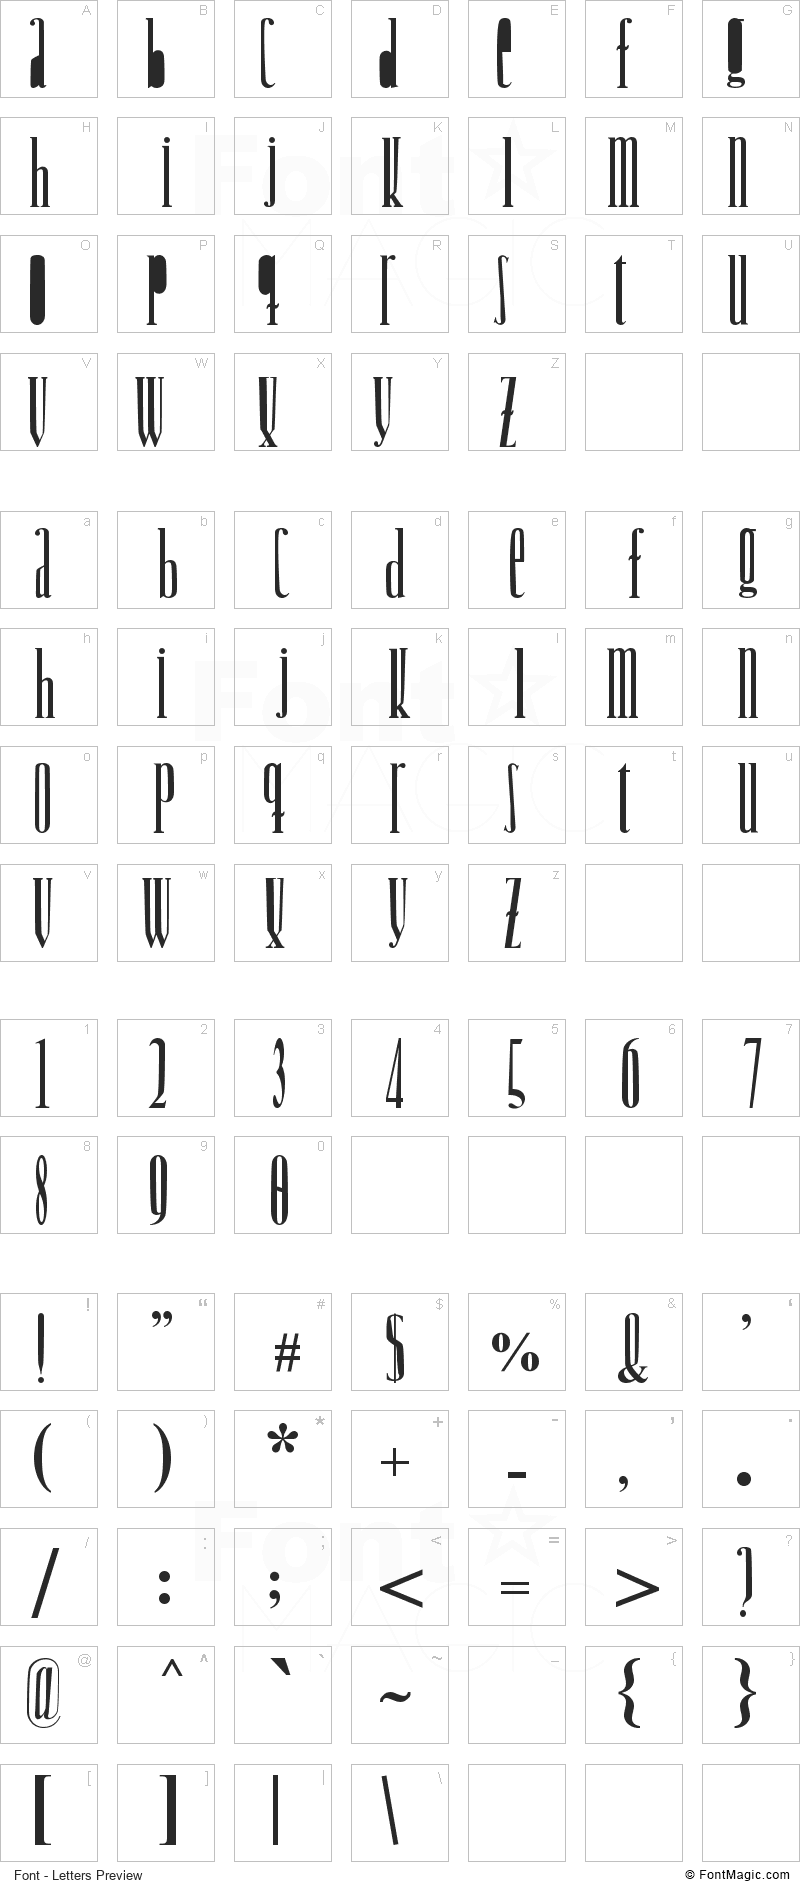 Woodcutter Jet-Set Font - All Latters Preview Chart